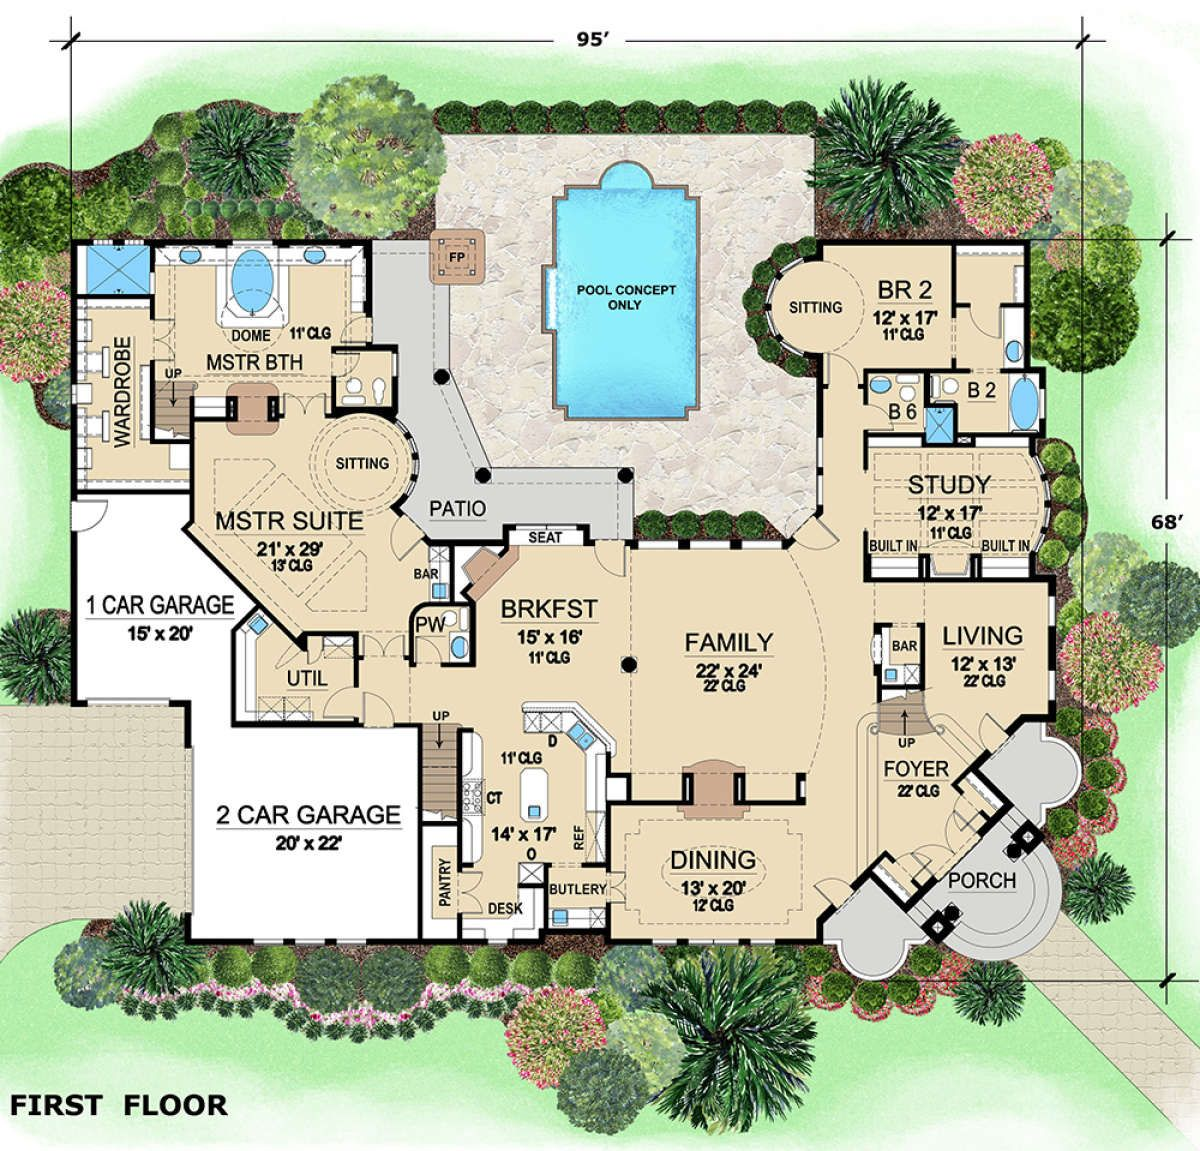 House Plan 5445 00295 Luxury Plan 5 889 Square Feet 5 Bedrooms 6 5 Bathrooms House Blueprints Luxury House Plans House Layouts